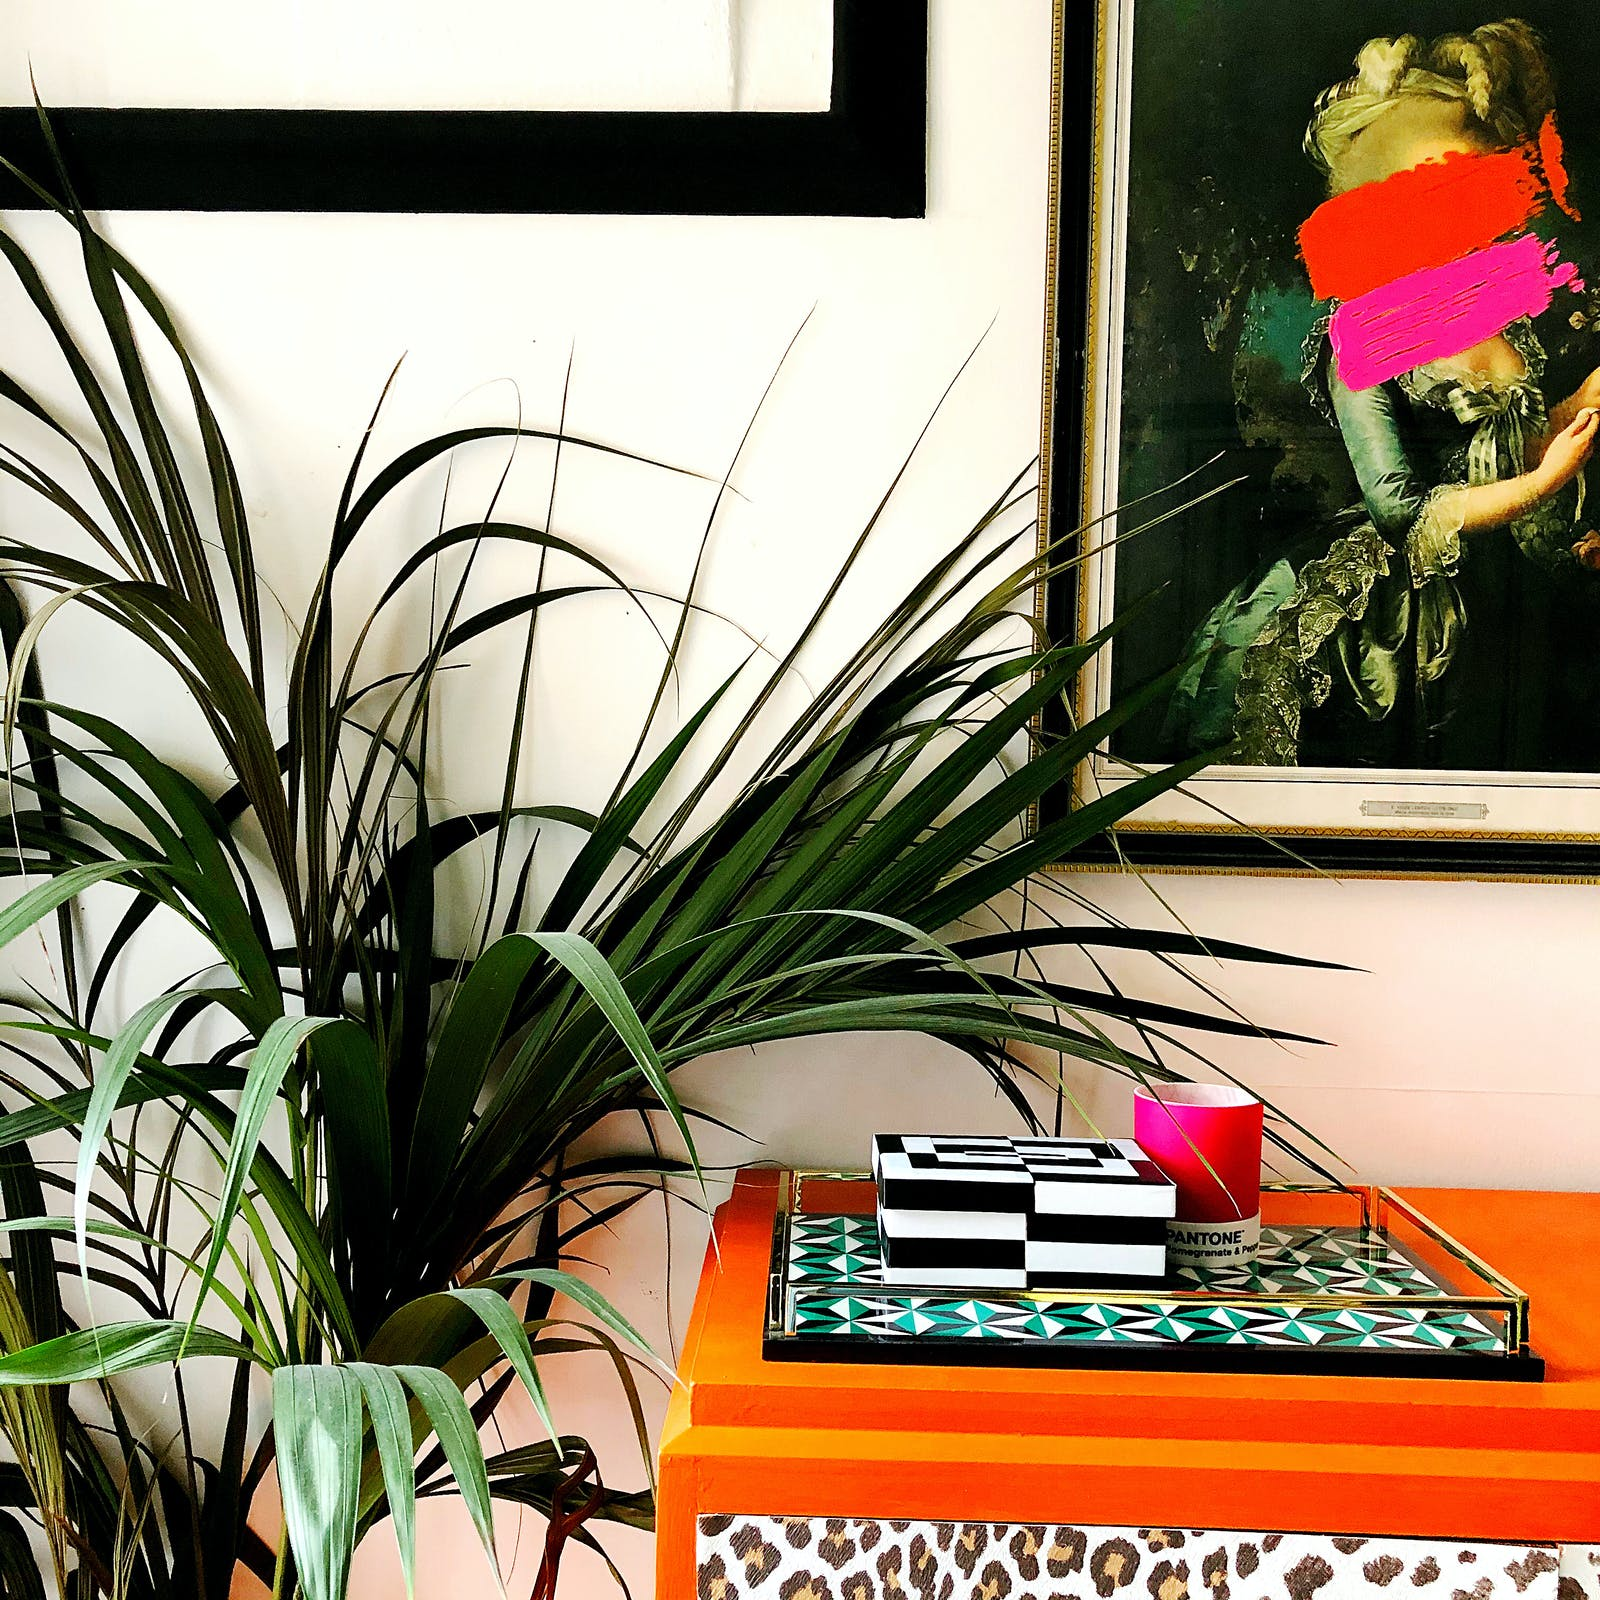 RHOI close up of indoor plant, orange table and neon artwork